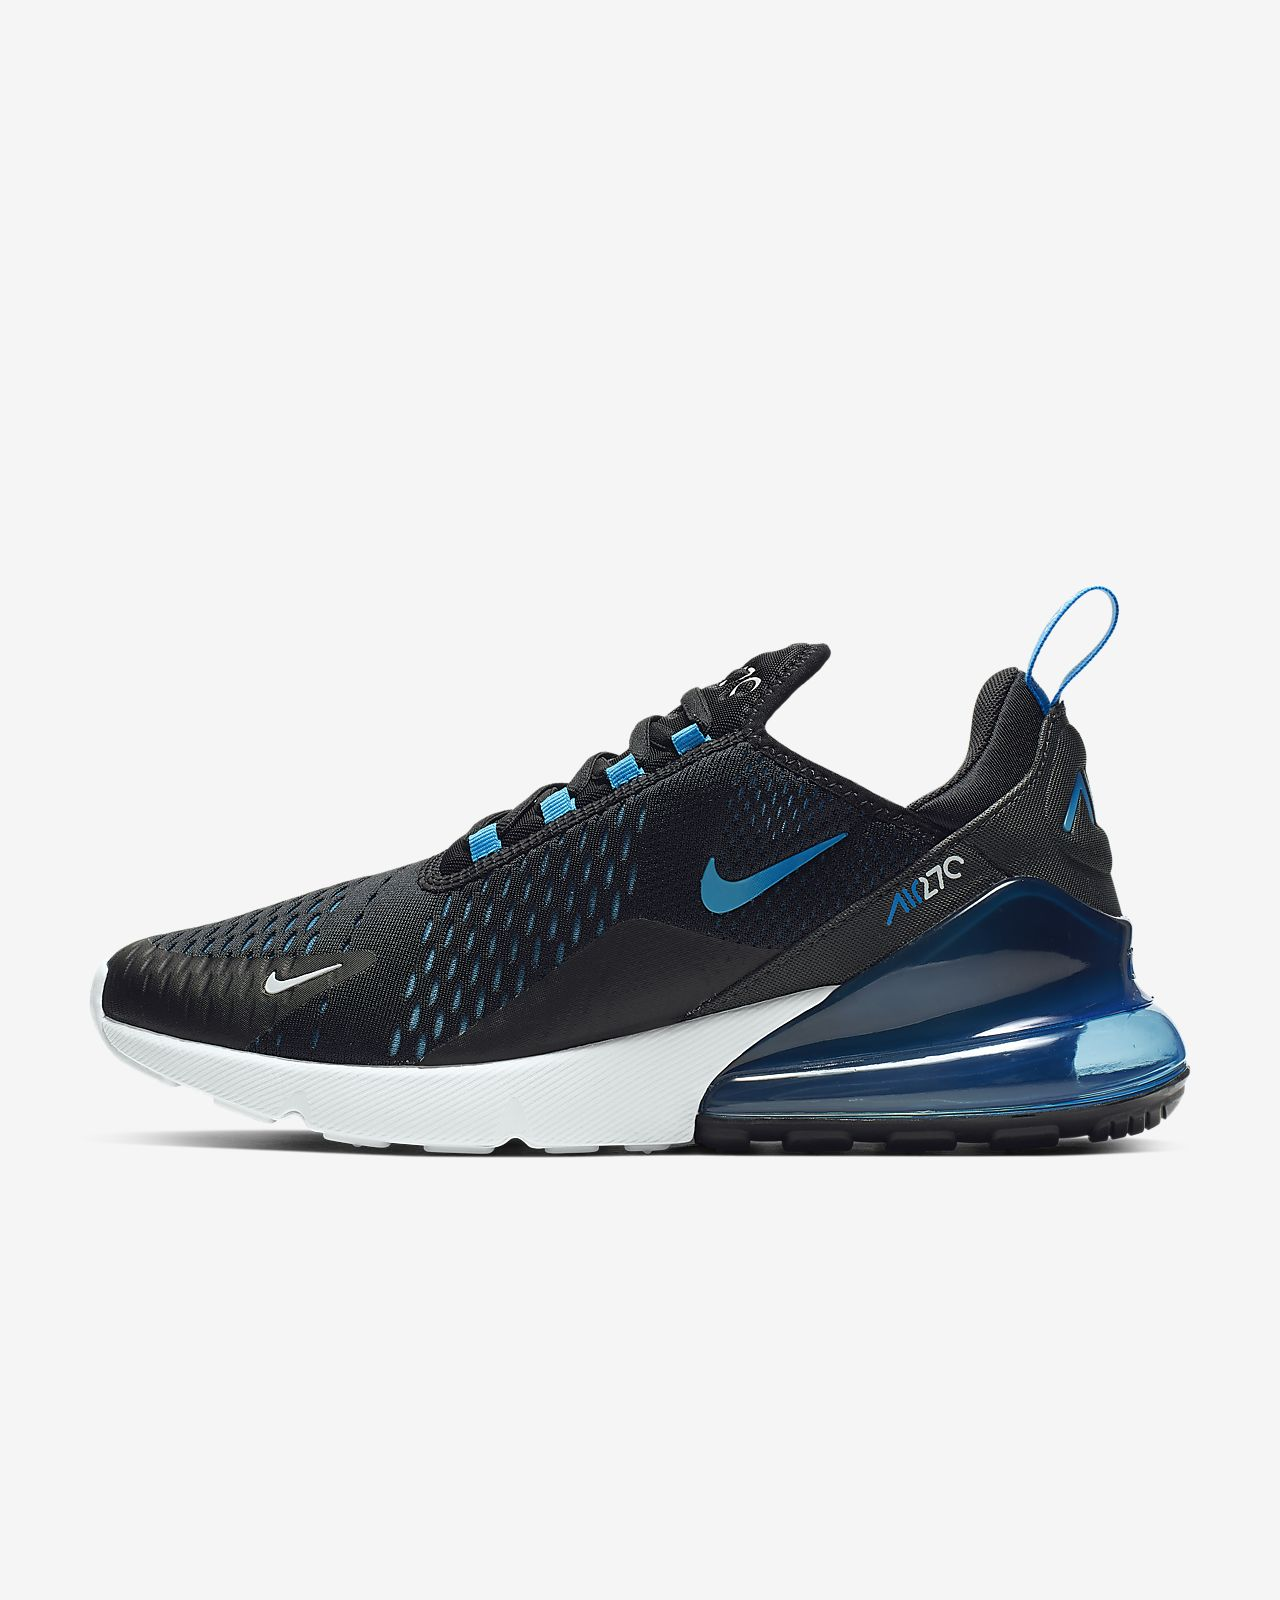 meet 53481 a7924 Men s Shoe. Nike Air Max 270